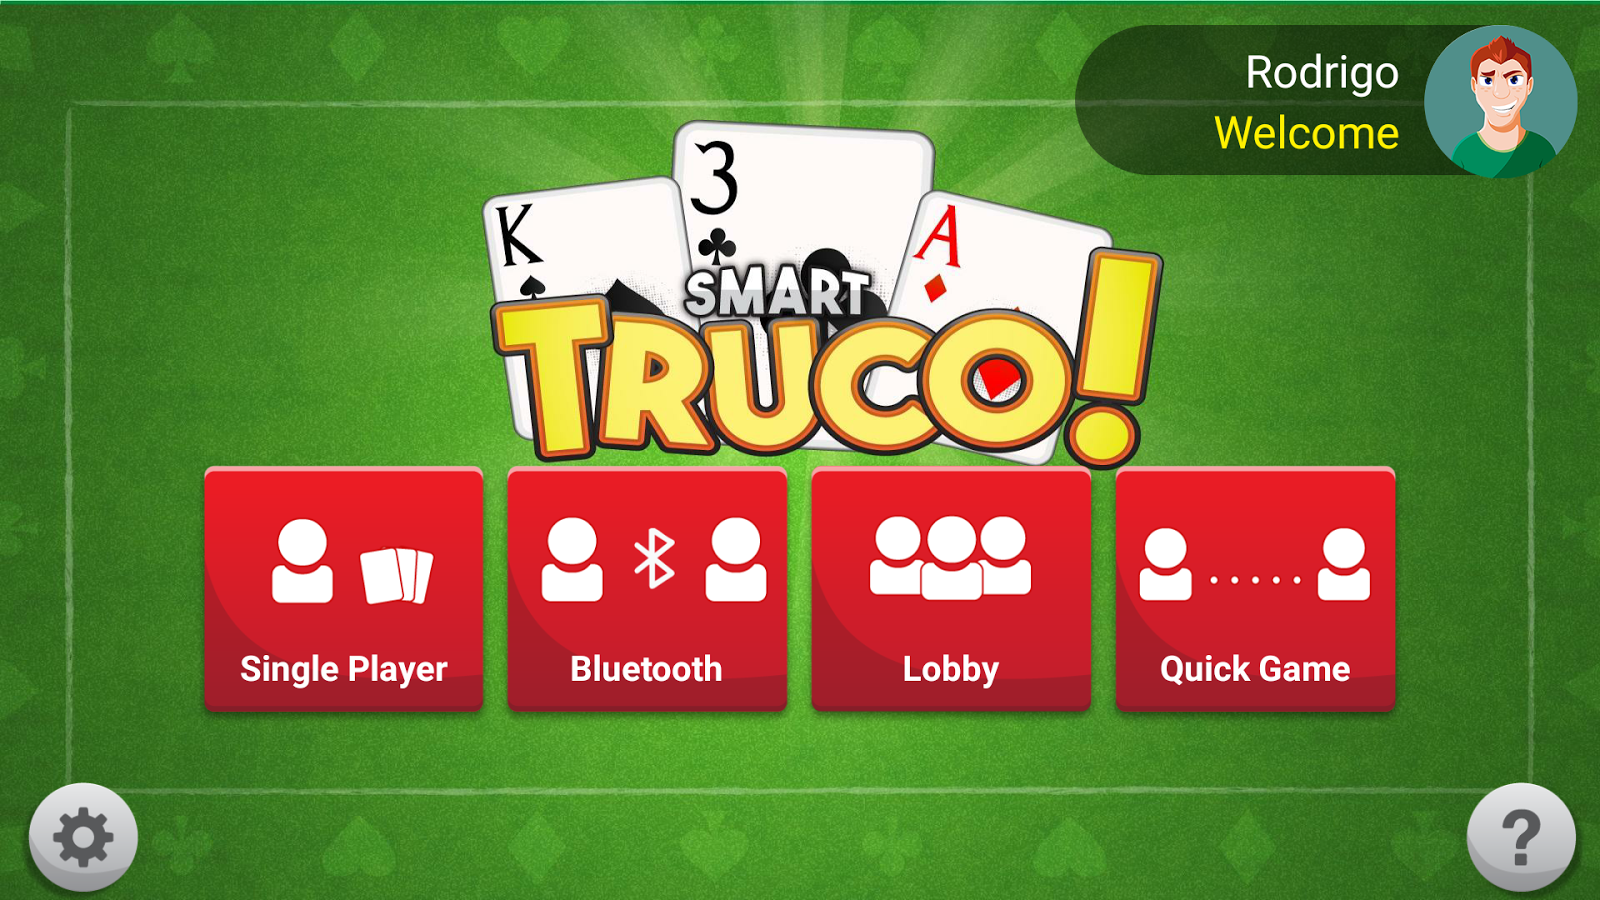 LG Smart Truco- screenshot